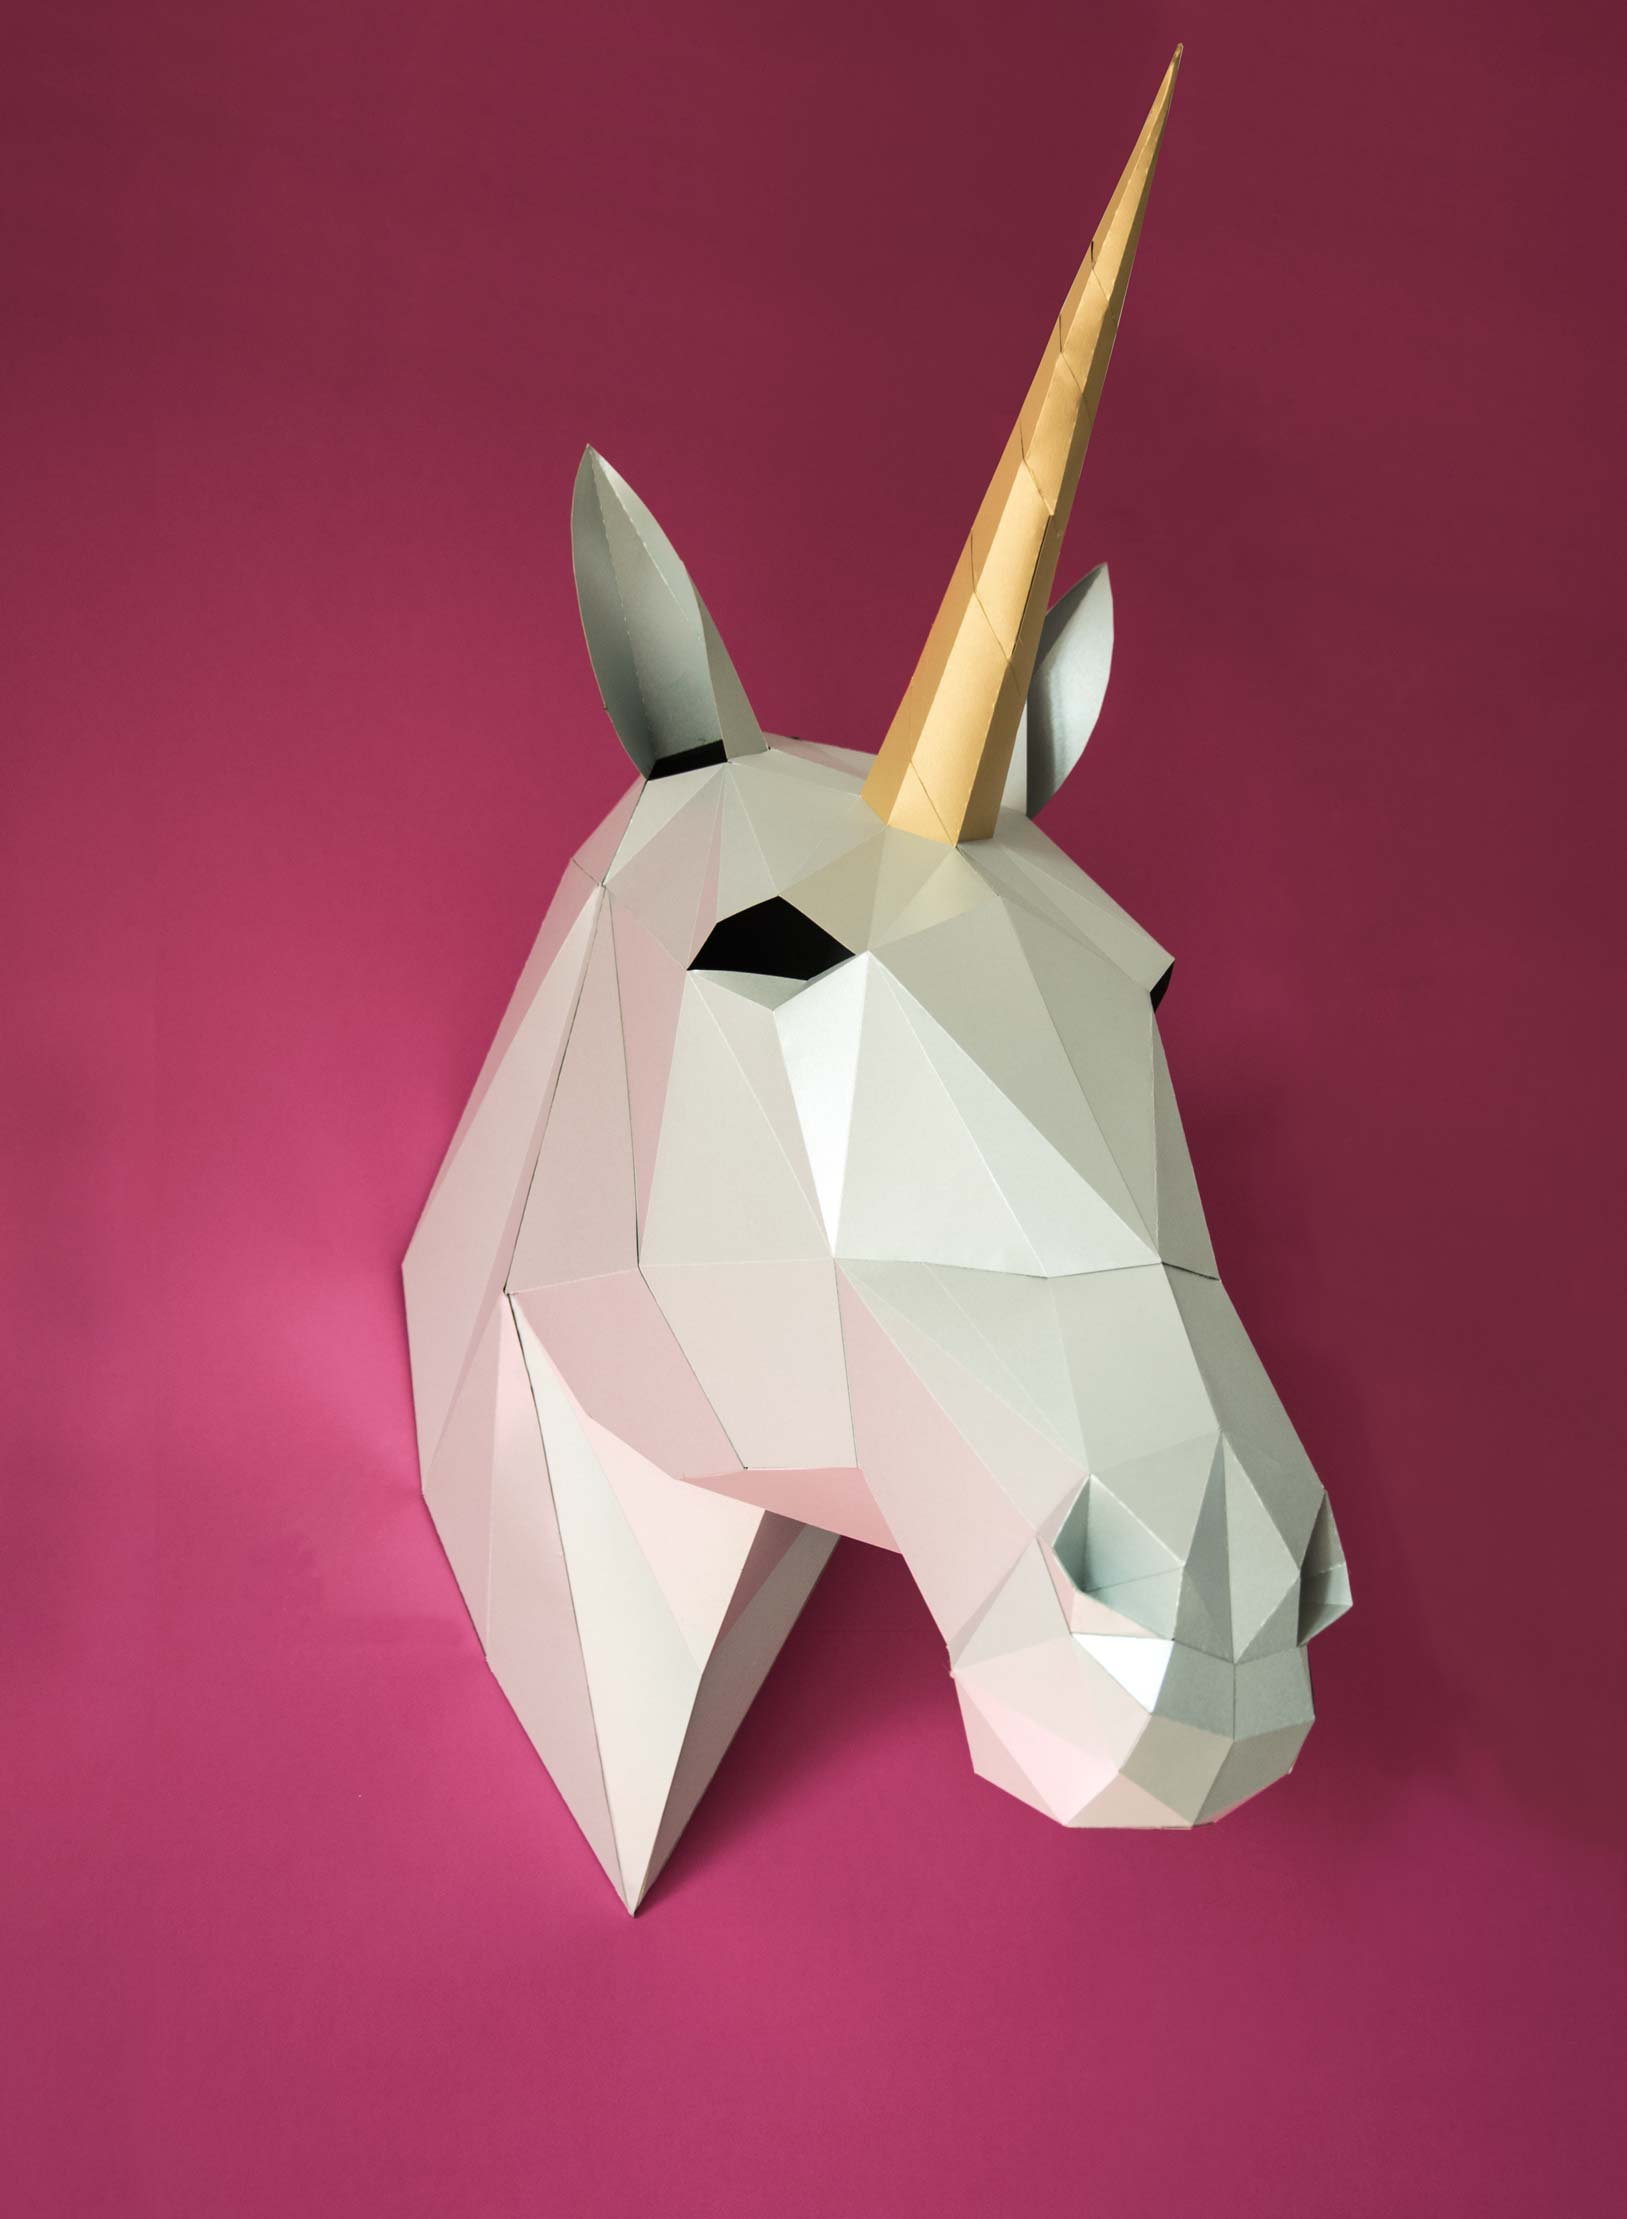 Handmade Paper Craft Gifts You can Make Right Now Unicorn Decor 3d Papercraft Digital Download Smaga Projektanci